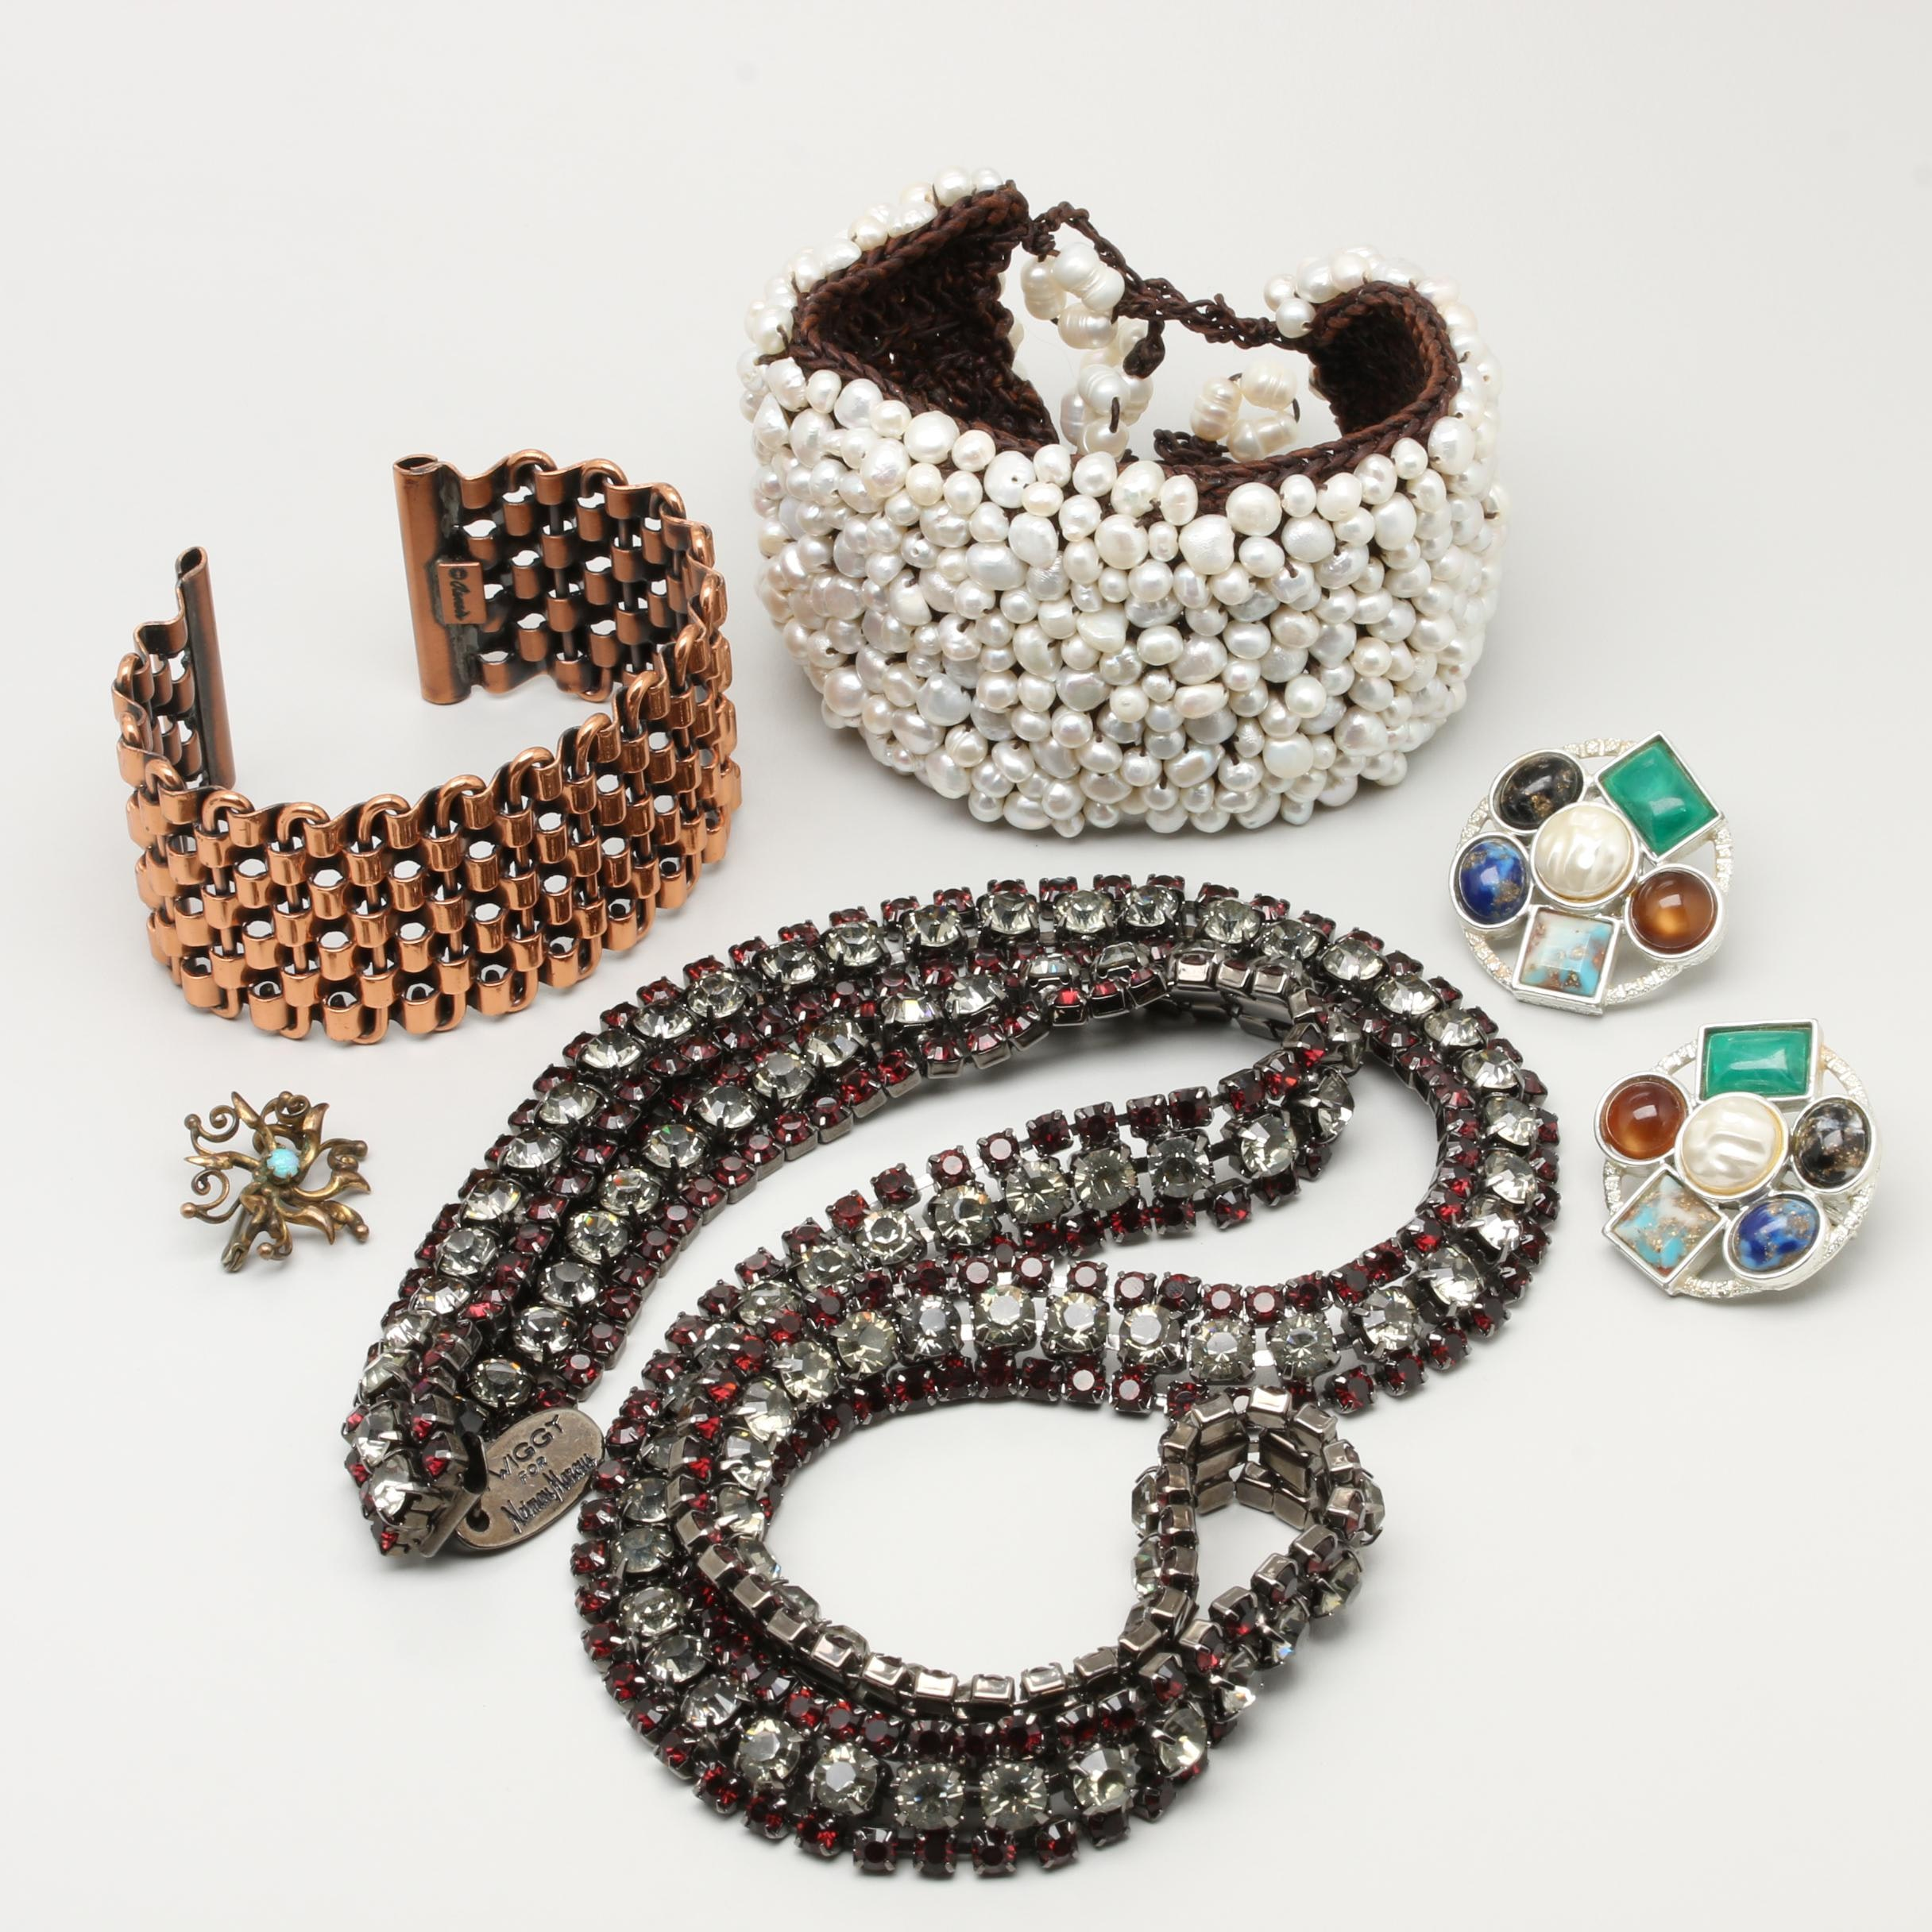 Jewelry Selection with Victorian Brooch and Twiggy for Neiman Marcus Necklace